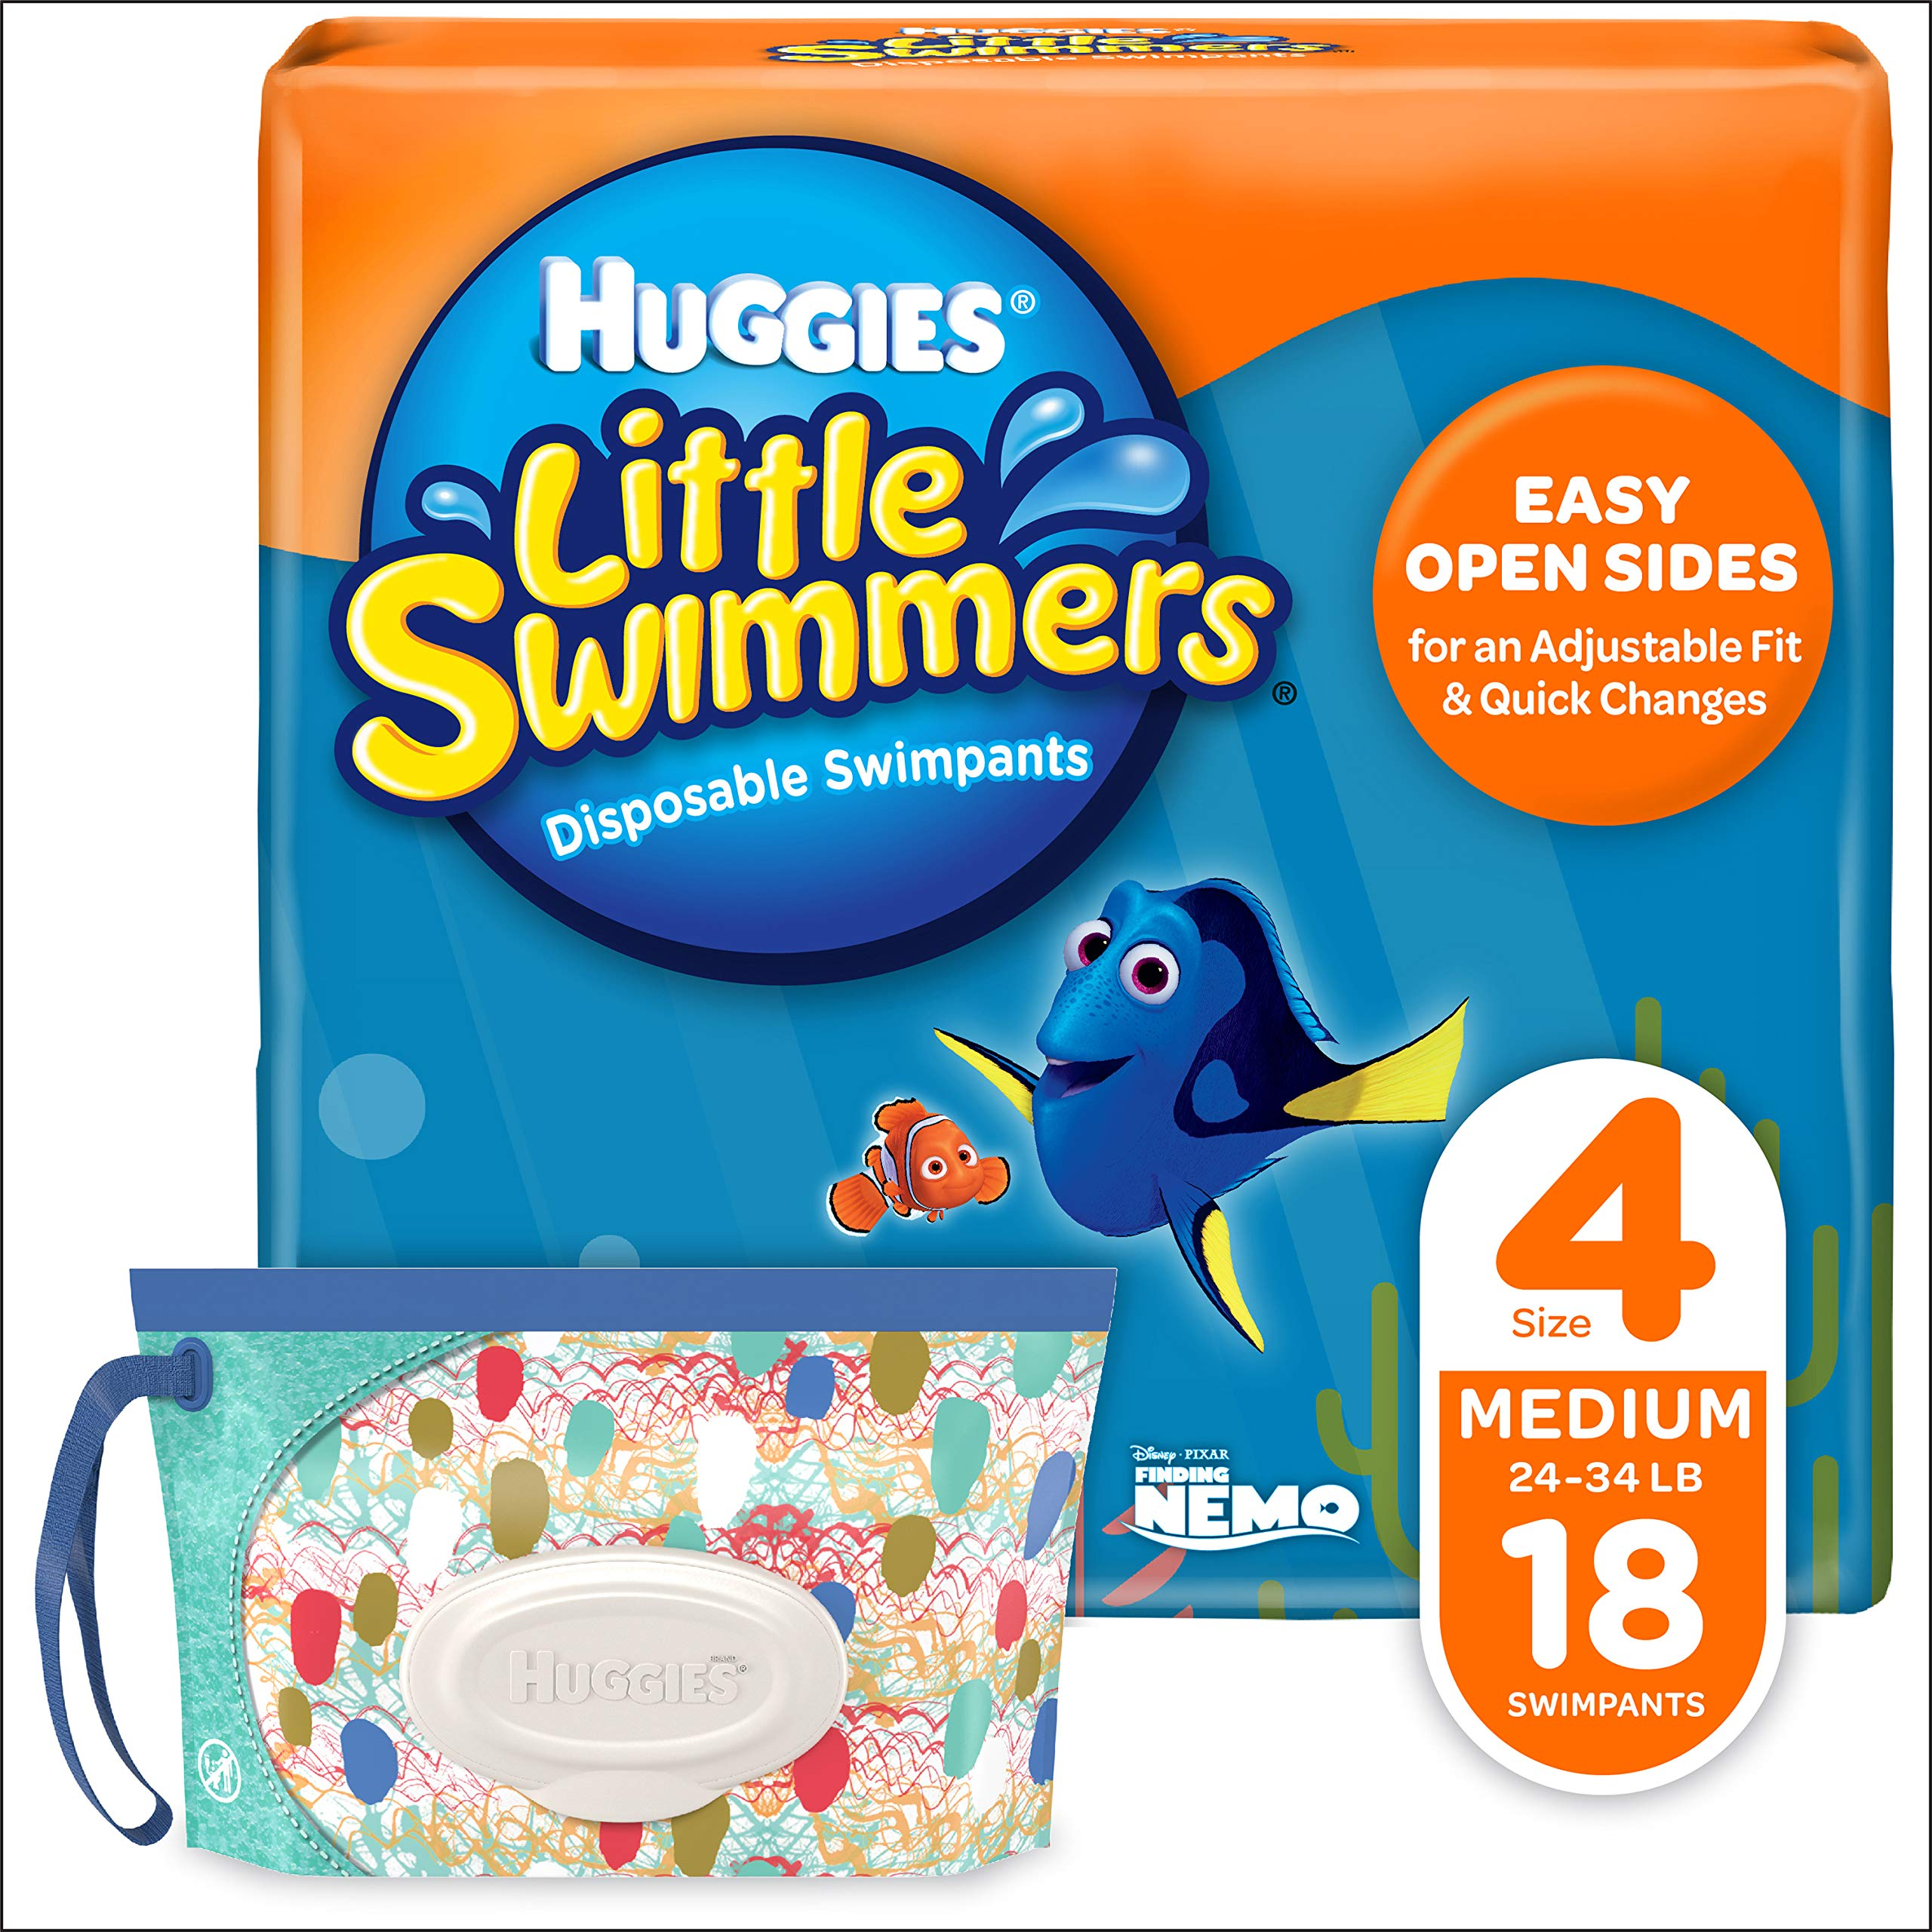 Huggies Little Swimmers Disposible Swim Diapers